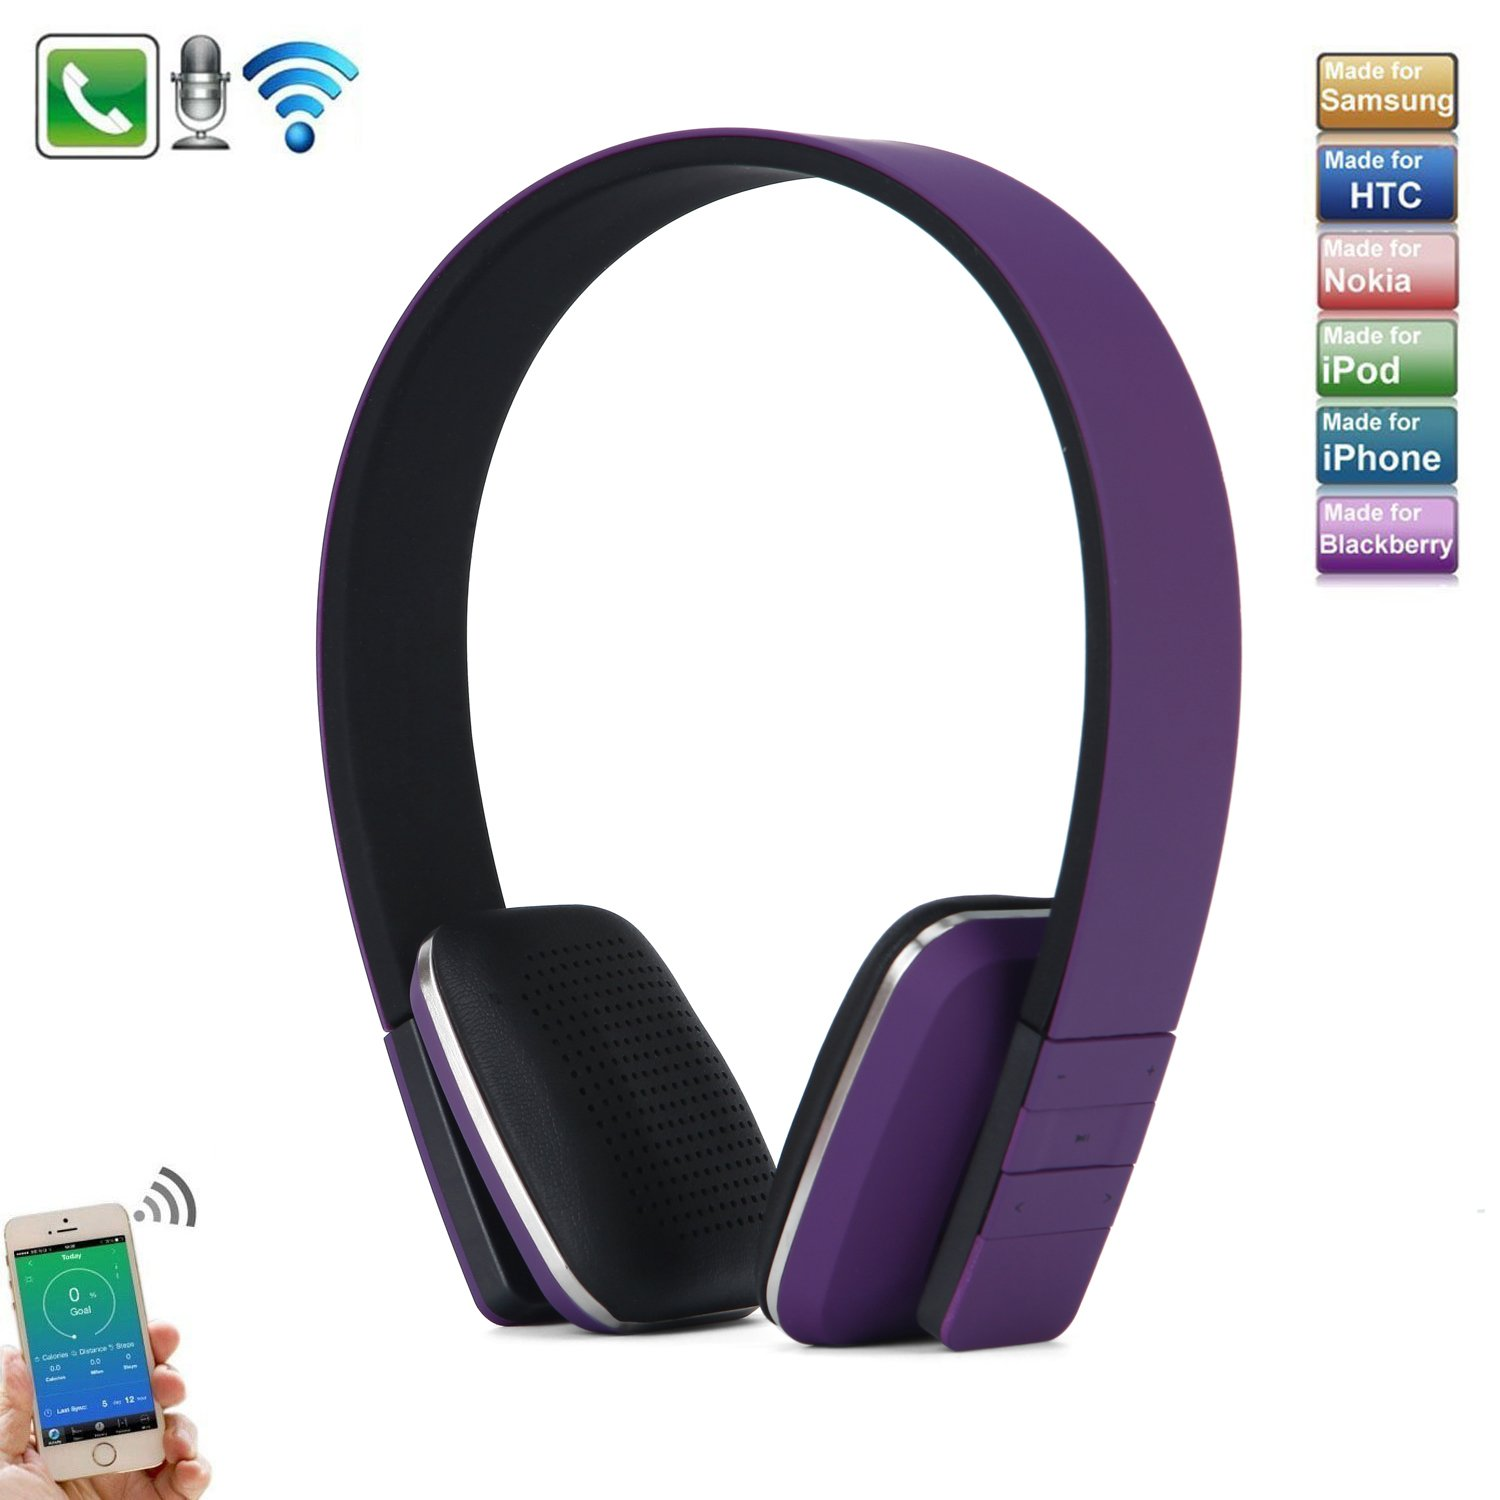 Wireless Bluetooth Headphones, Adjustable Head Type Over Ear Musical Earphone Headset Speaker Bulit in Mic with Plugable Bluetooth USB Adapter for Android,iPhone,PC,TV,Tablet - Purple